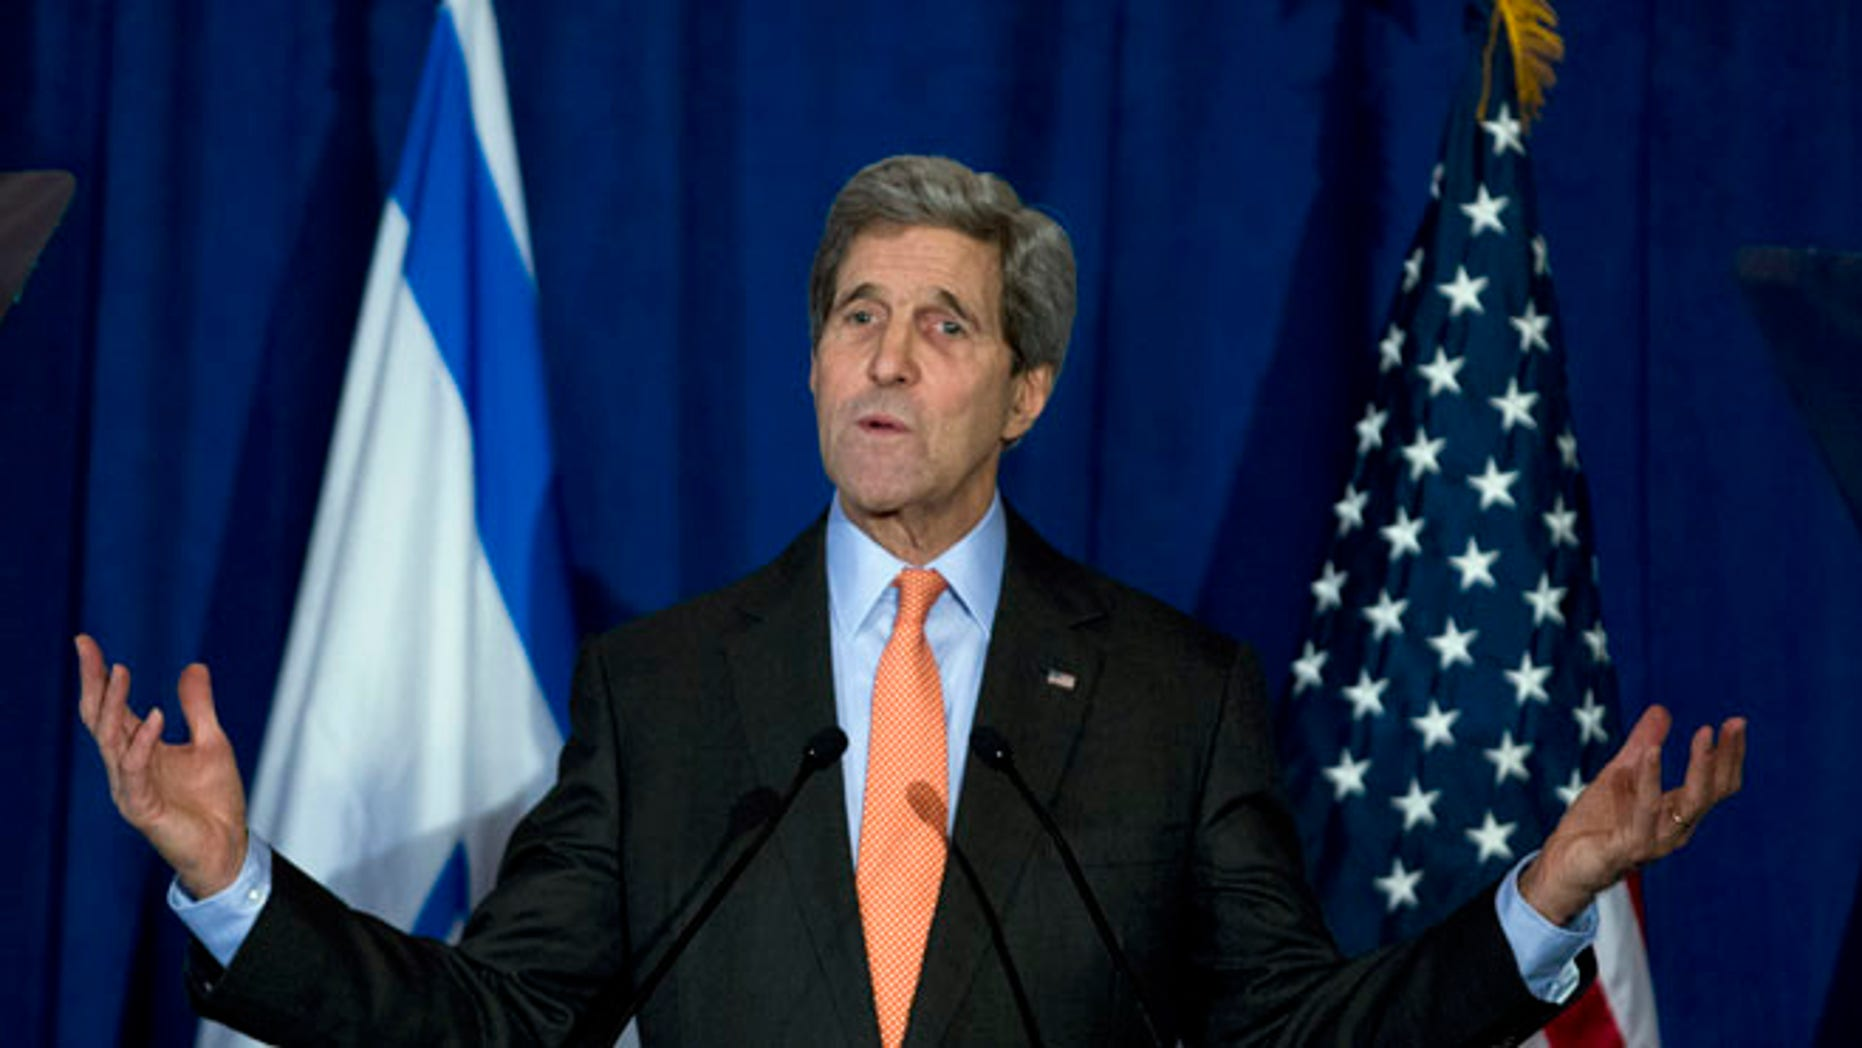 FILE: Dec. 7, 2014: Secretary of State John Kerry at the Brookings Institution, in Washington, D.C.